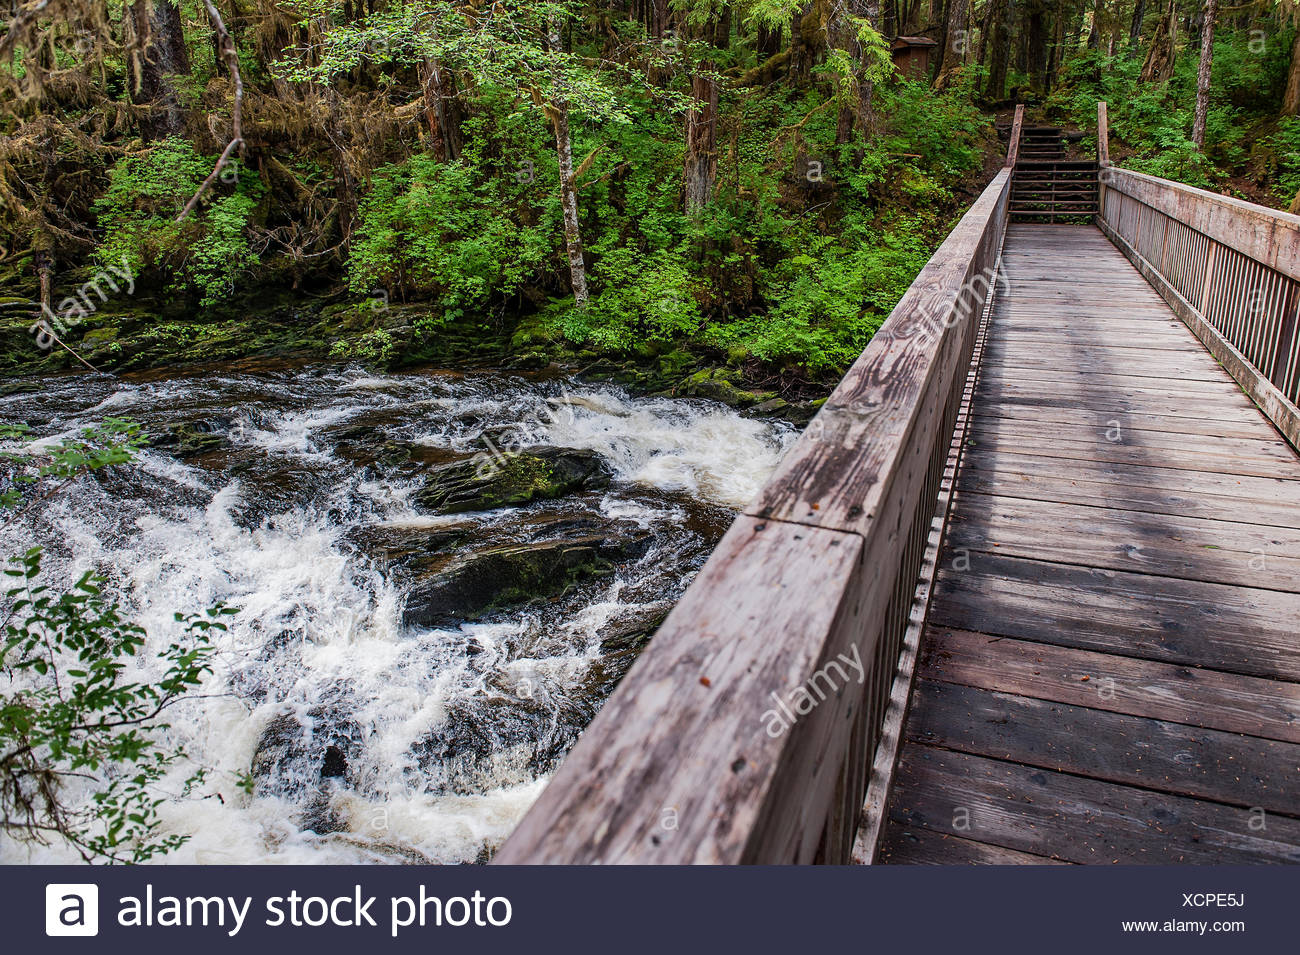 Wooden footbridge over a rushing stream in the temperate rainforest of Tongass National Forest, Ketchikan, Alaska, USA - Stock Image